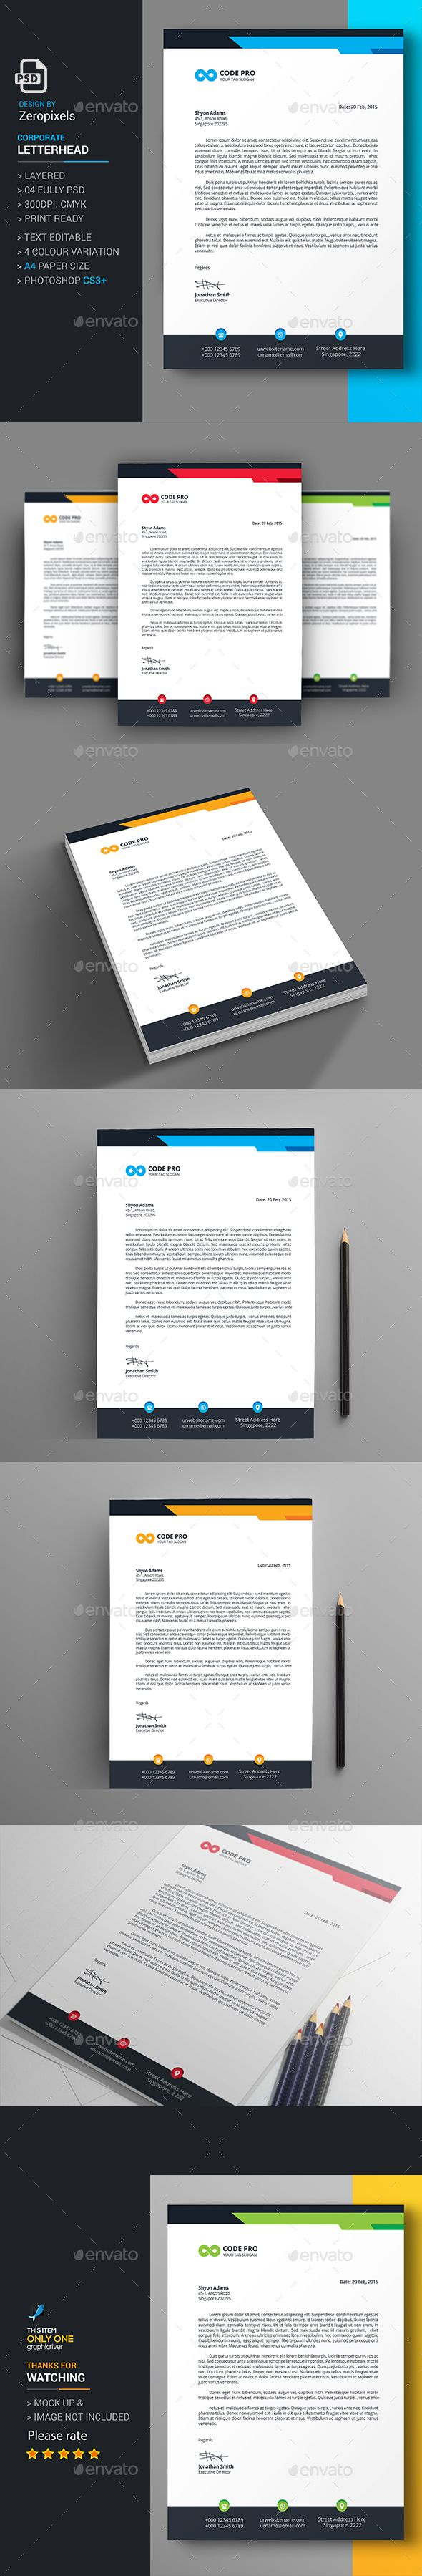 Letterhead Design Template - Stationery Print Template PSD. Download here: http://graphicriver.net/item/letterhead/16728356?s_rank=76&ref=yinkira